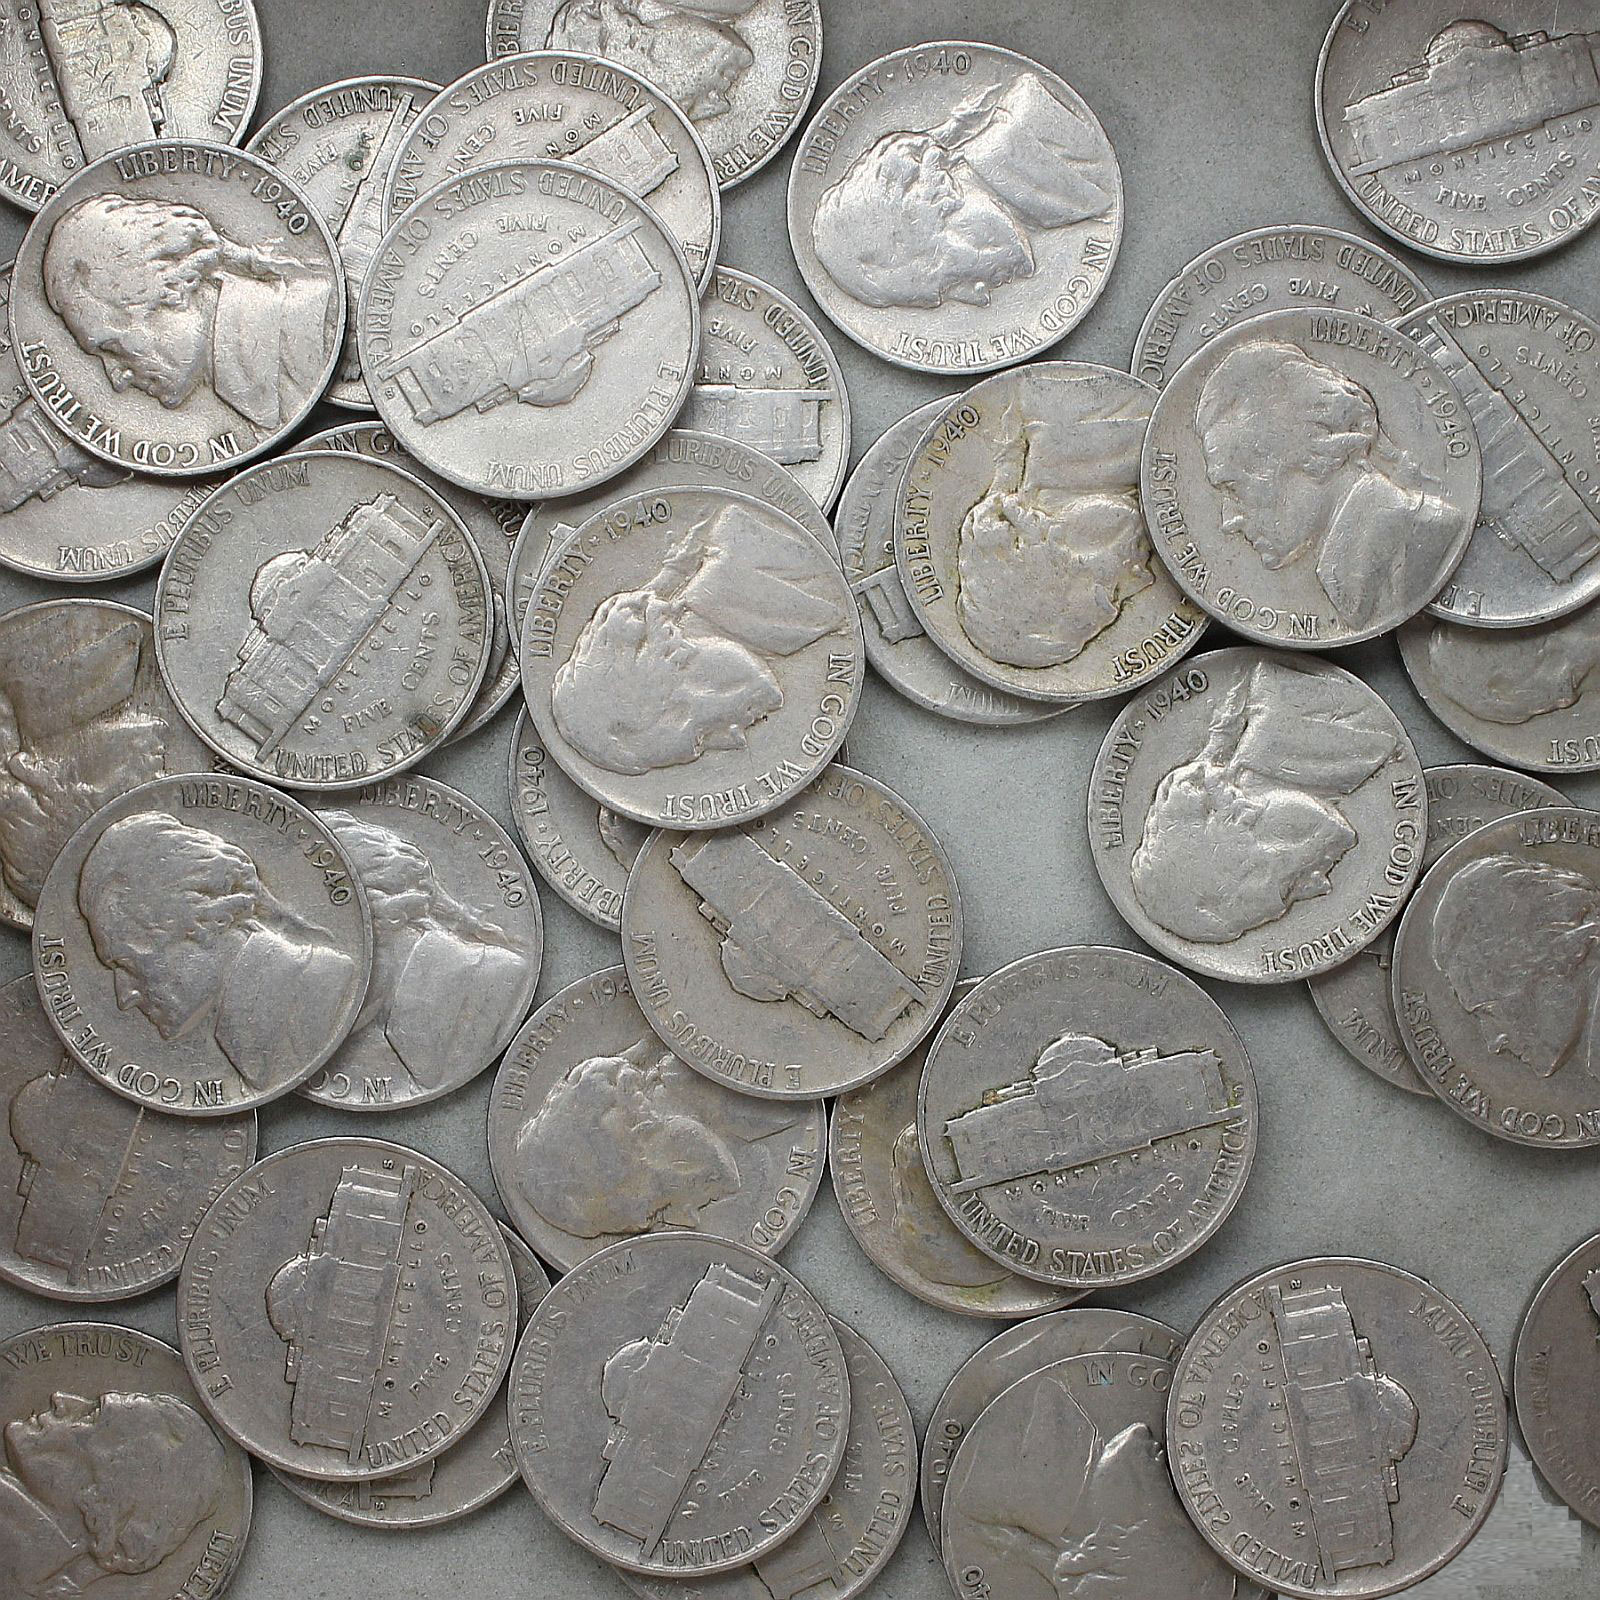 1940 S Jefferson Nickel Roll 40 Circulated US Coins